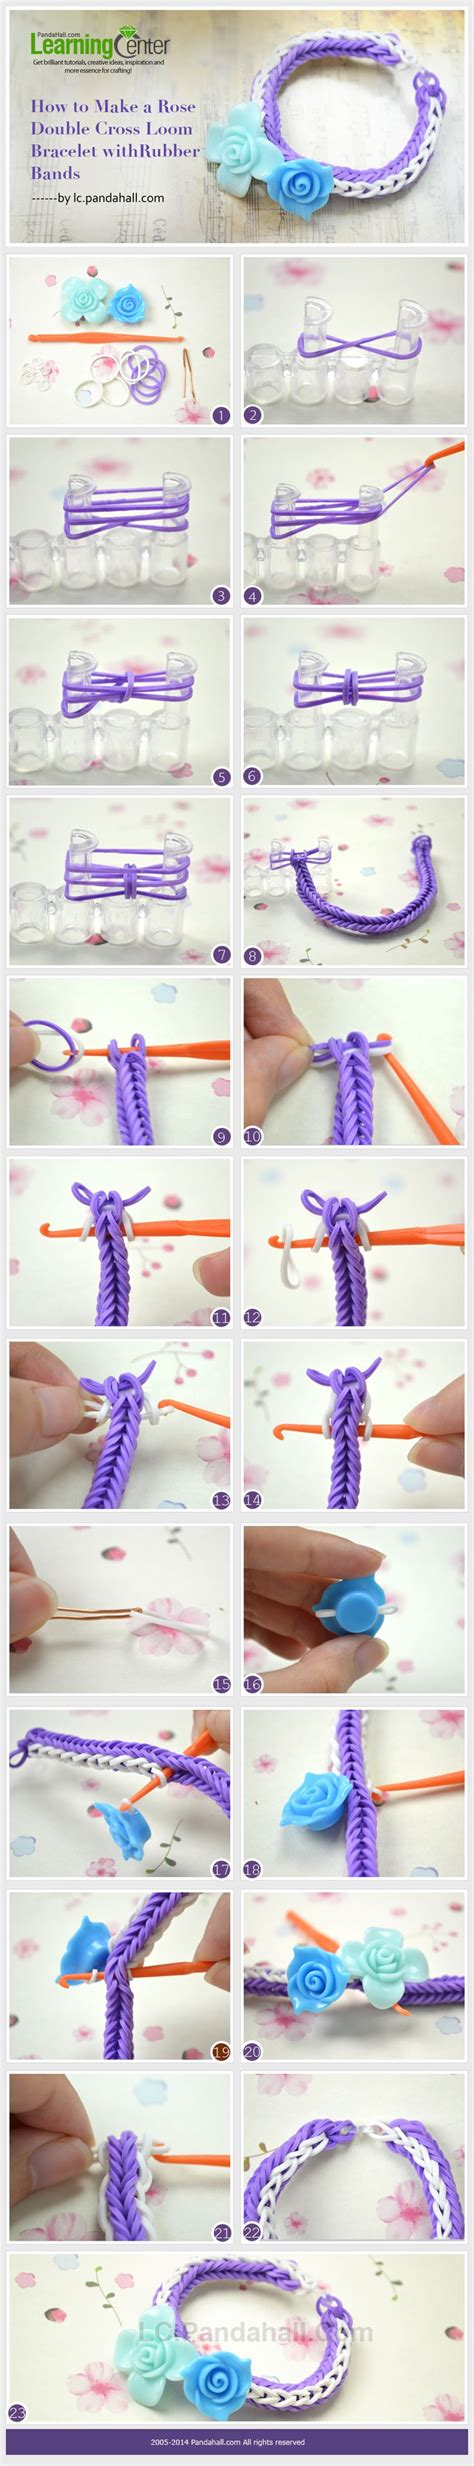 drumline tutorial how to make a rose double cross loom bracelet with rubber